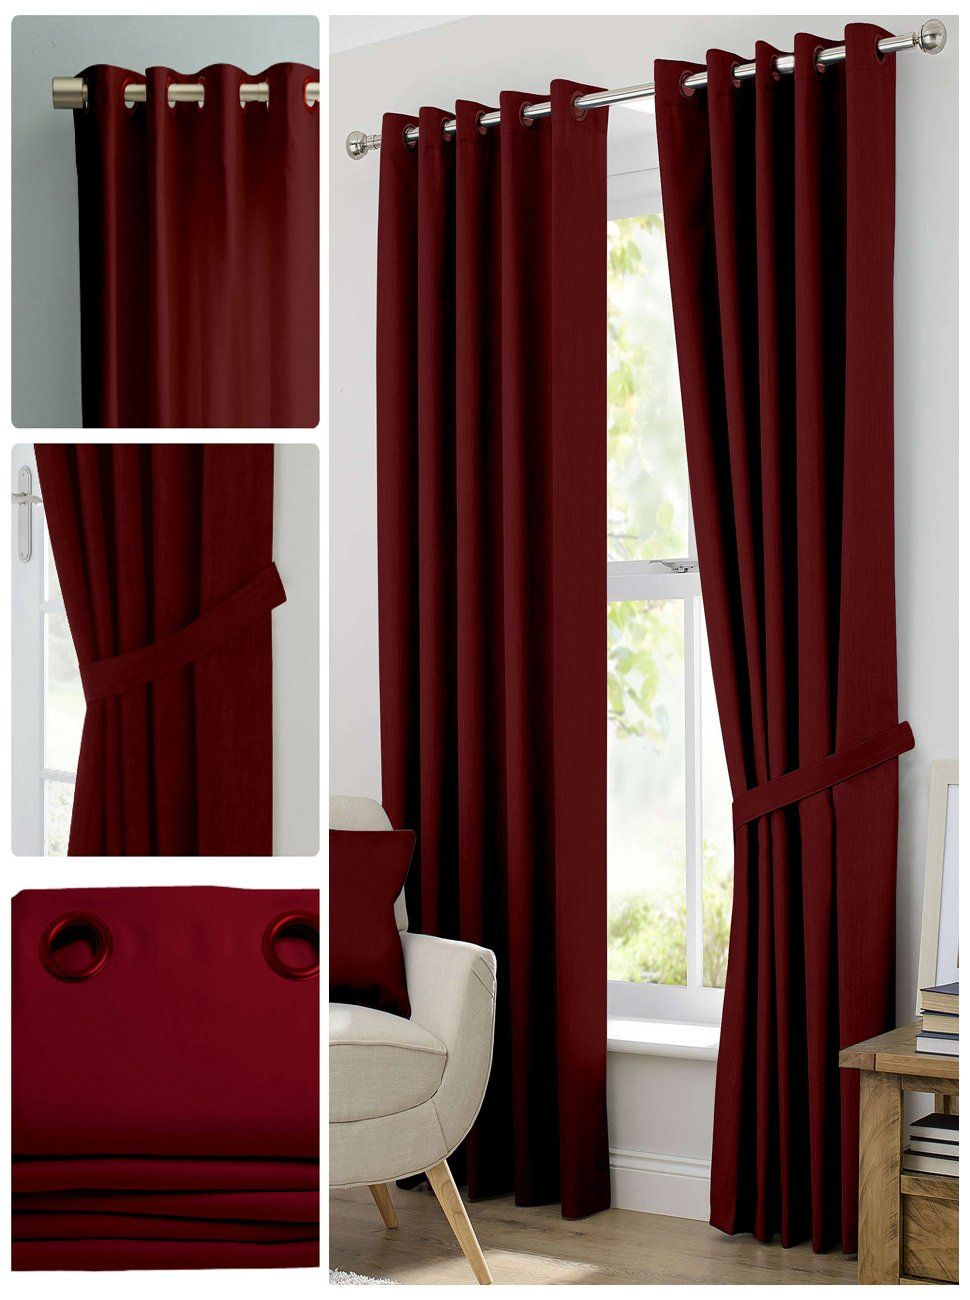 Dark Red Blackout Curtains Amazon Blackout Room Darkening Curtains Window Panel Drapes